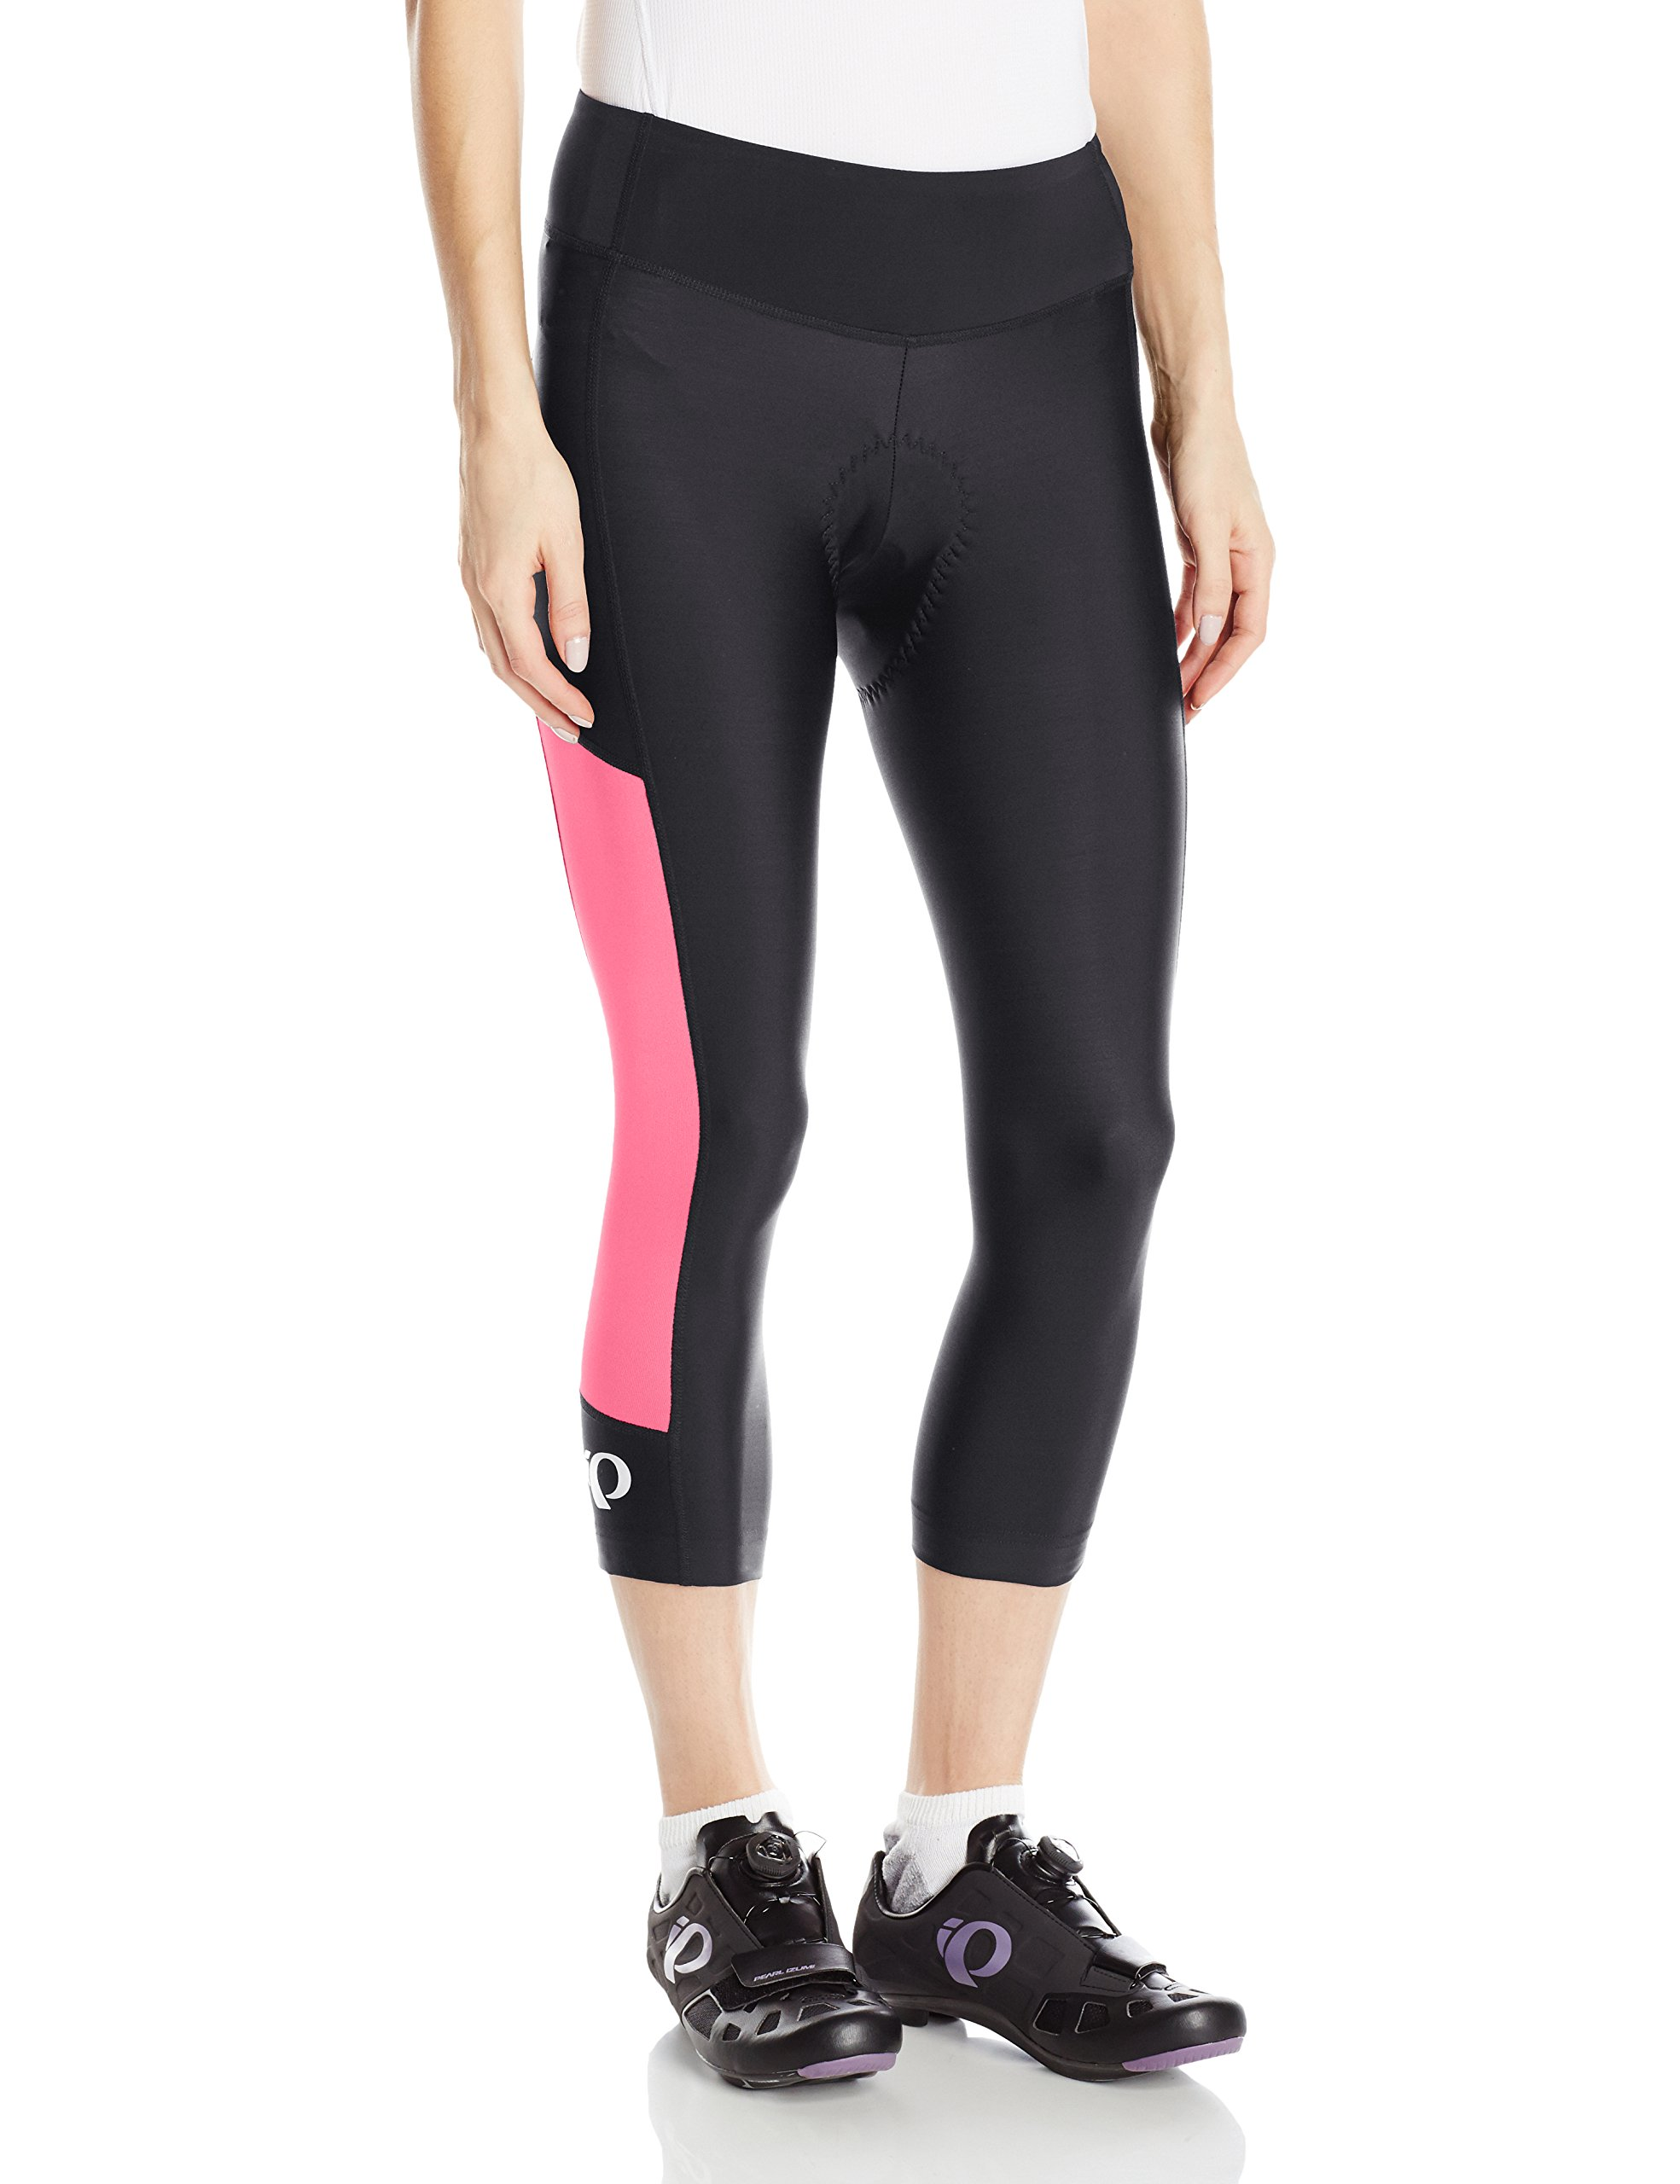 Pearl iZUMi Women's Escape Sugar CYC 3 Quarter Tights, Black/Screaming Pink, X-Small